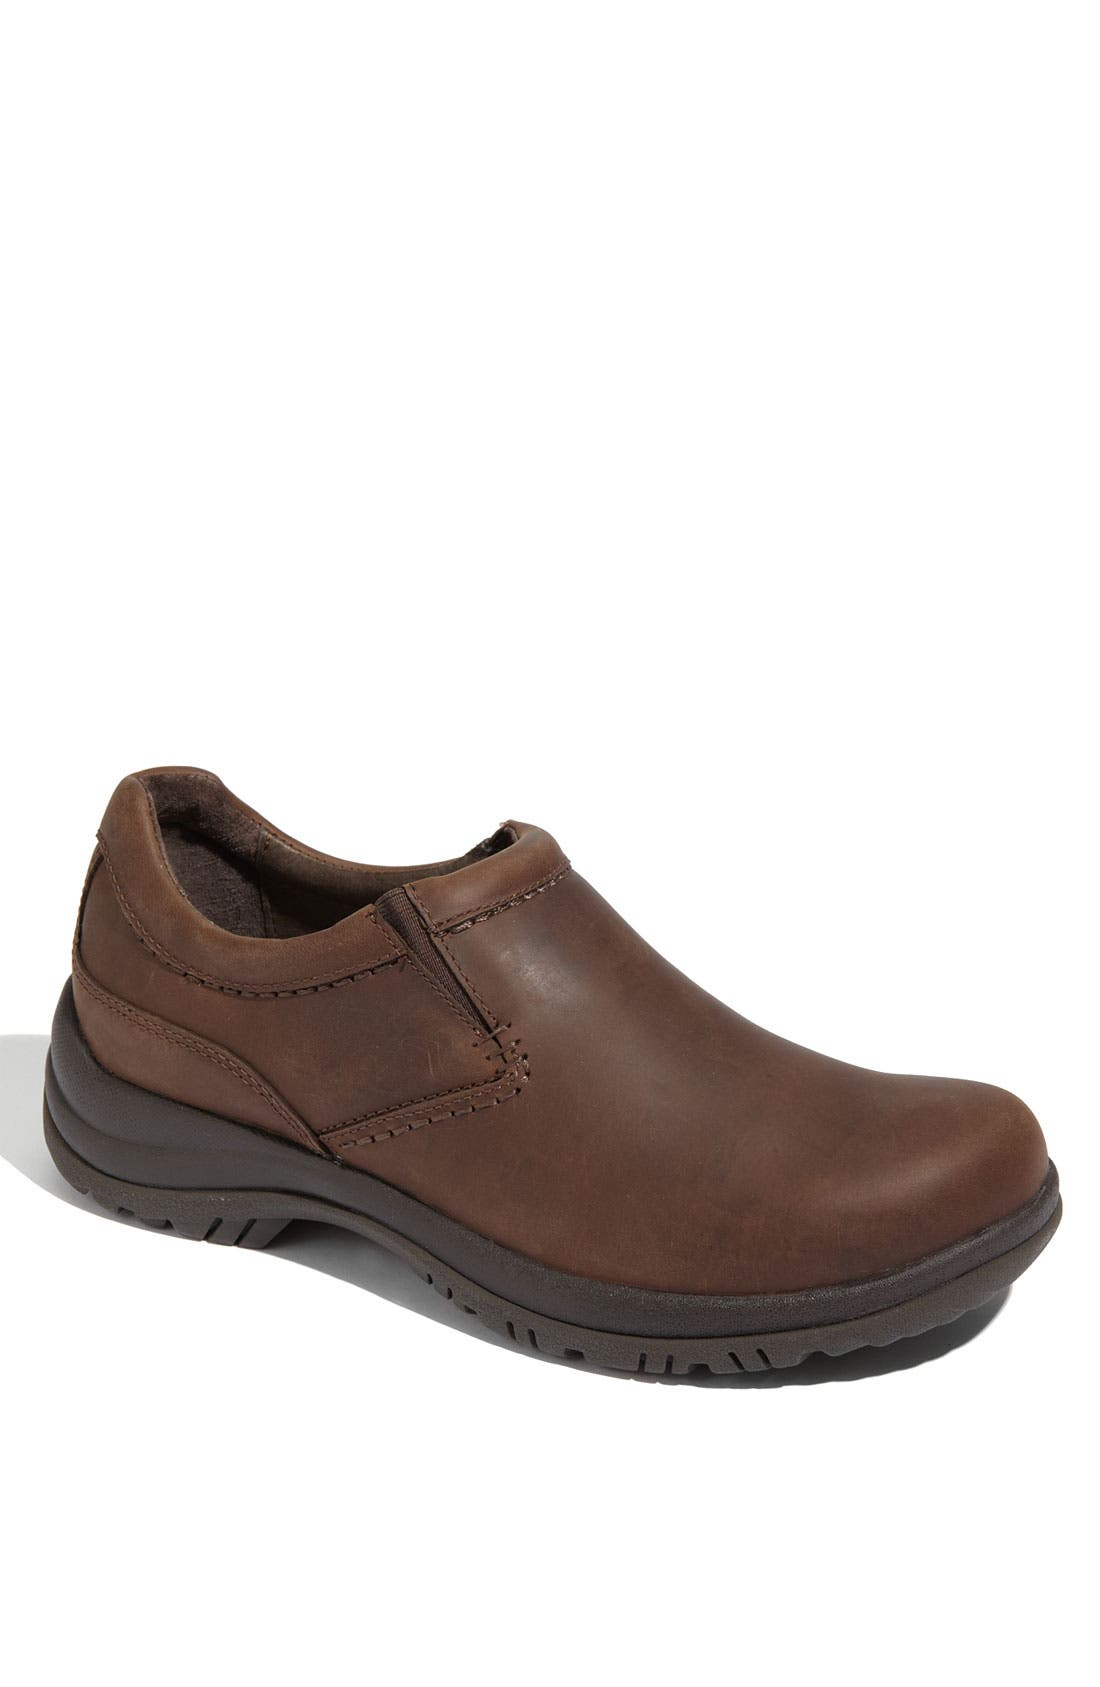 Main Image - Dansko 'Wynn' Slip-On